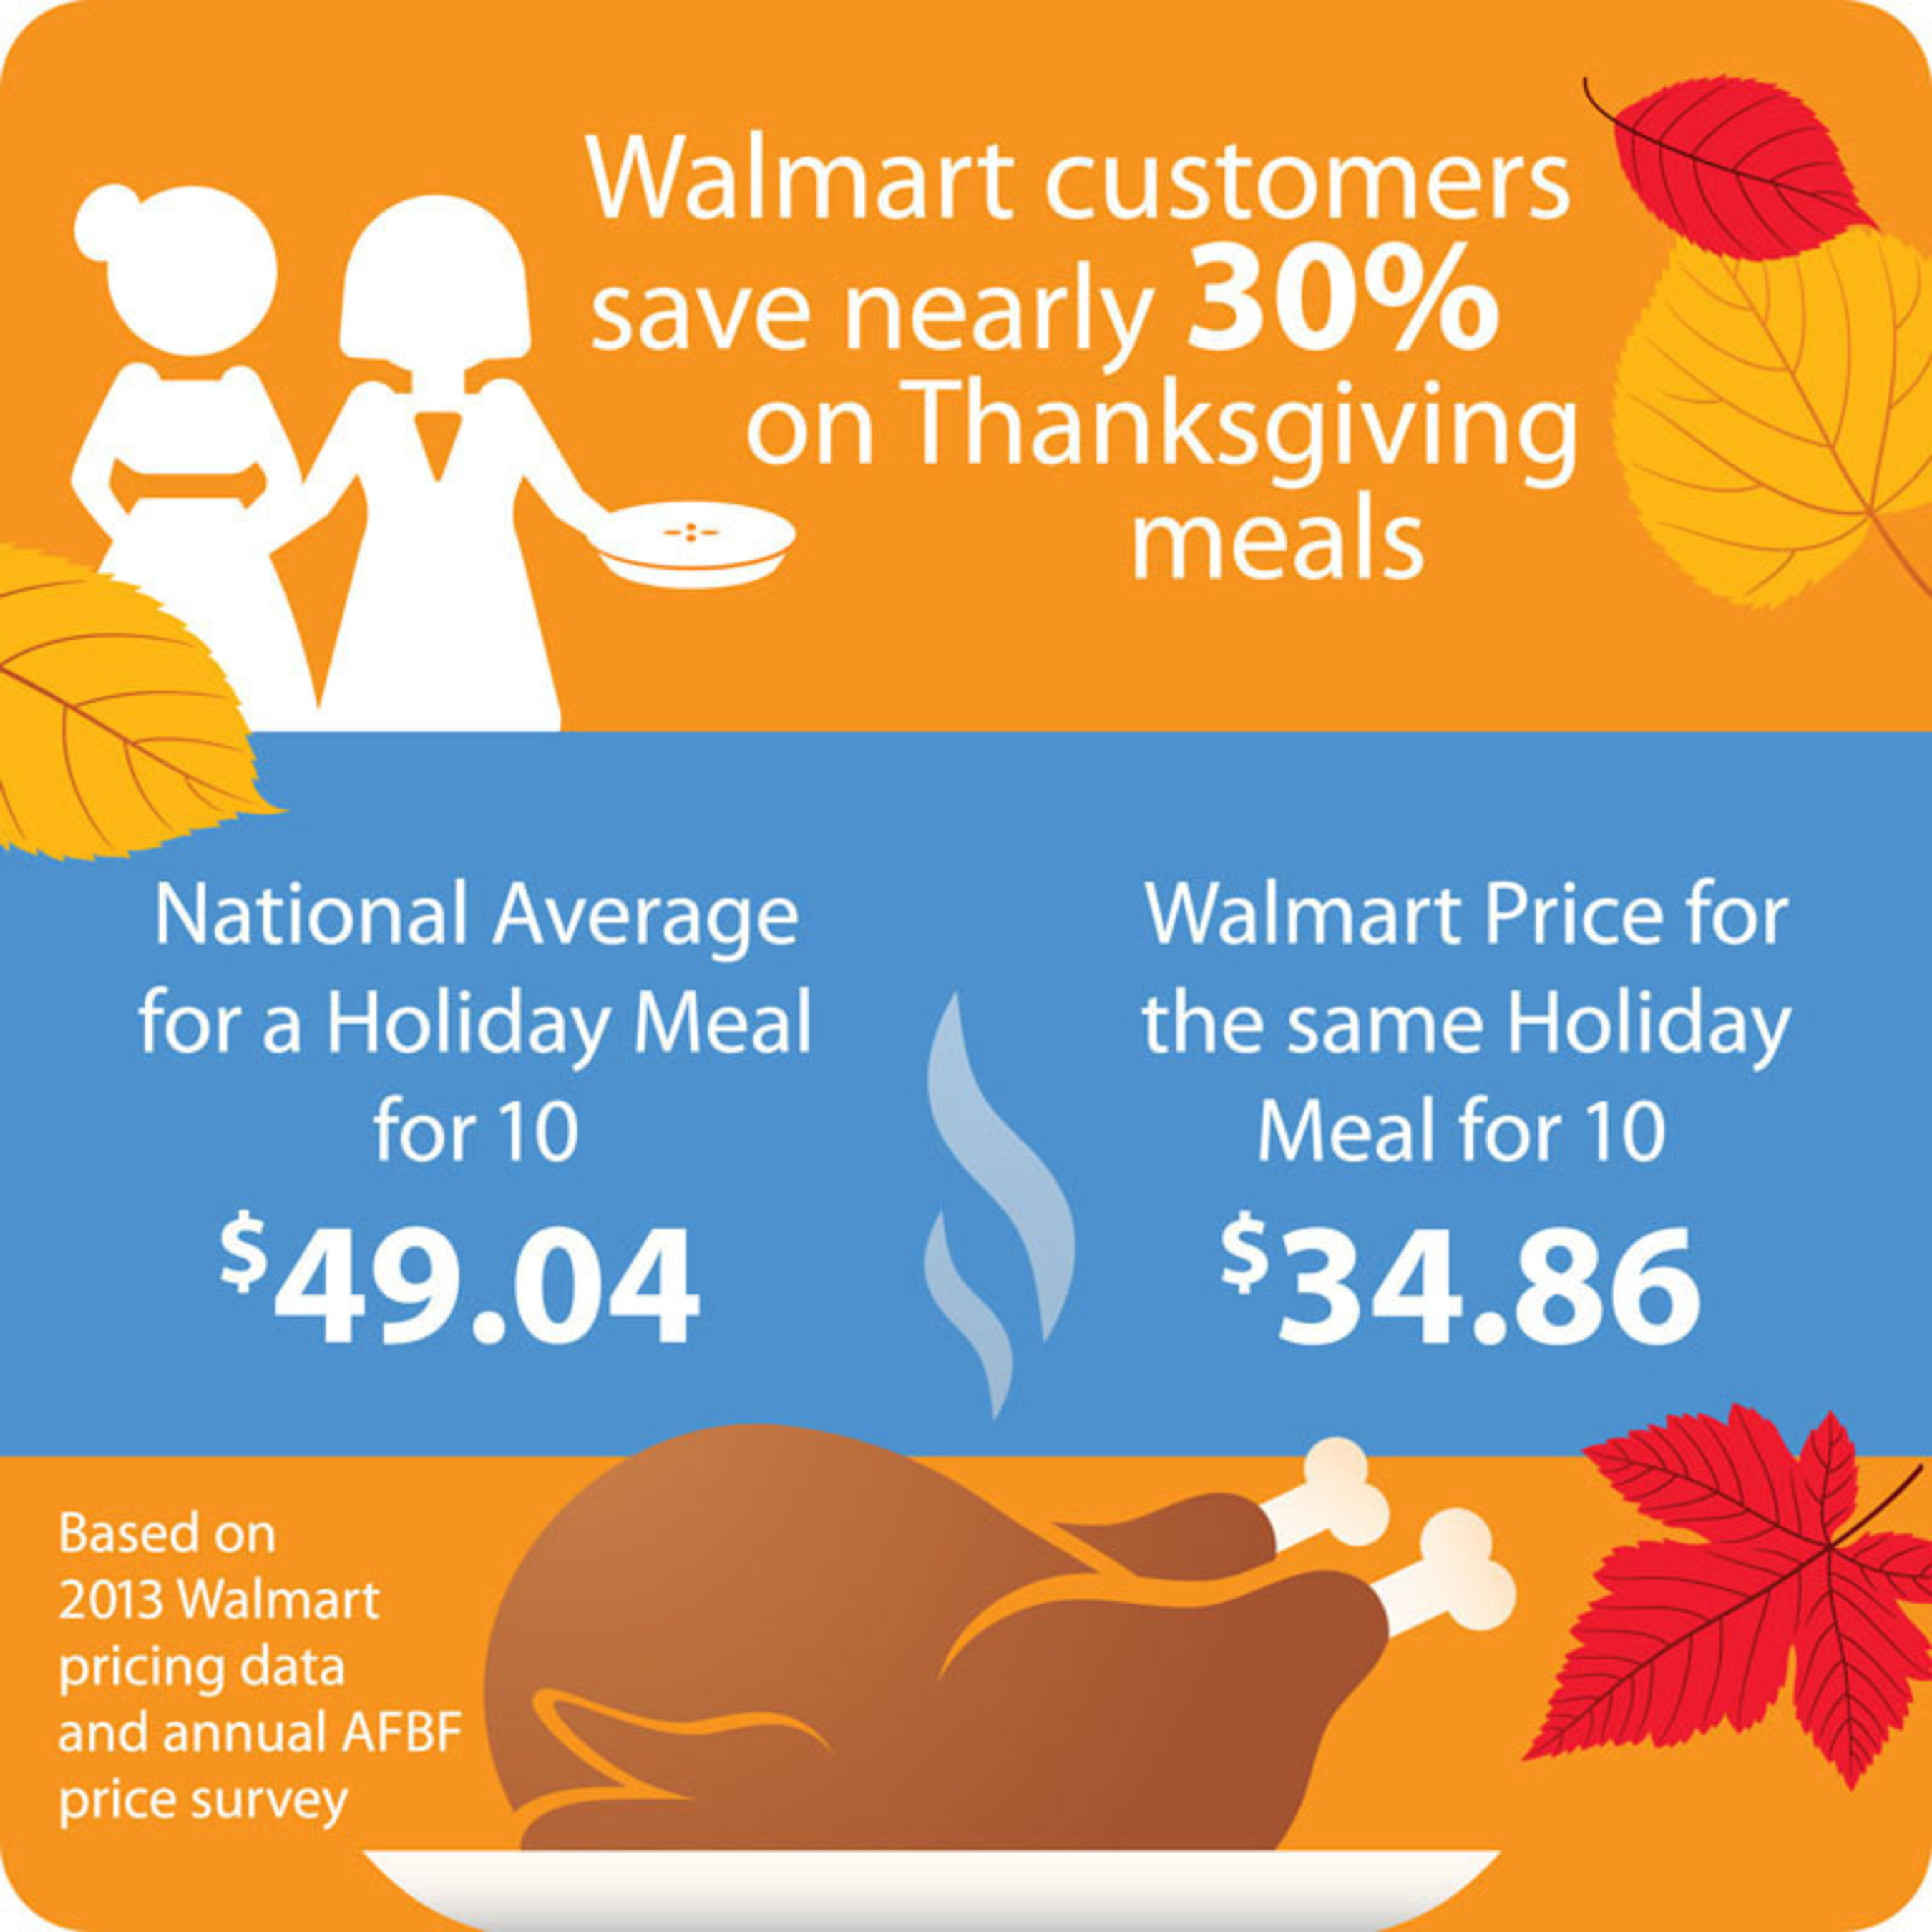 Walmart Shoppers Save Nearly 30% on Thanksgiving Meal Compared to National Average. (PRNewsFoto/Walmart)